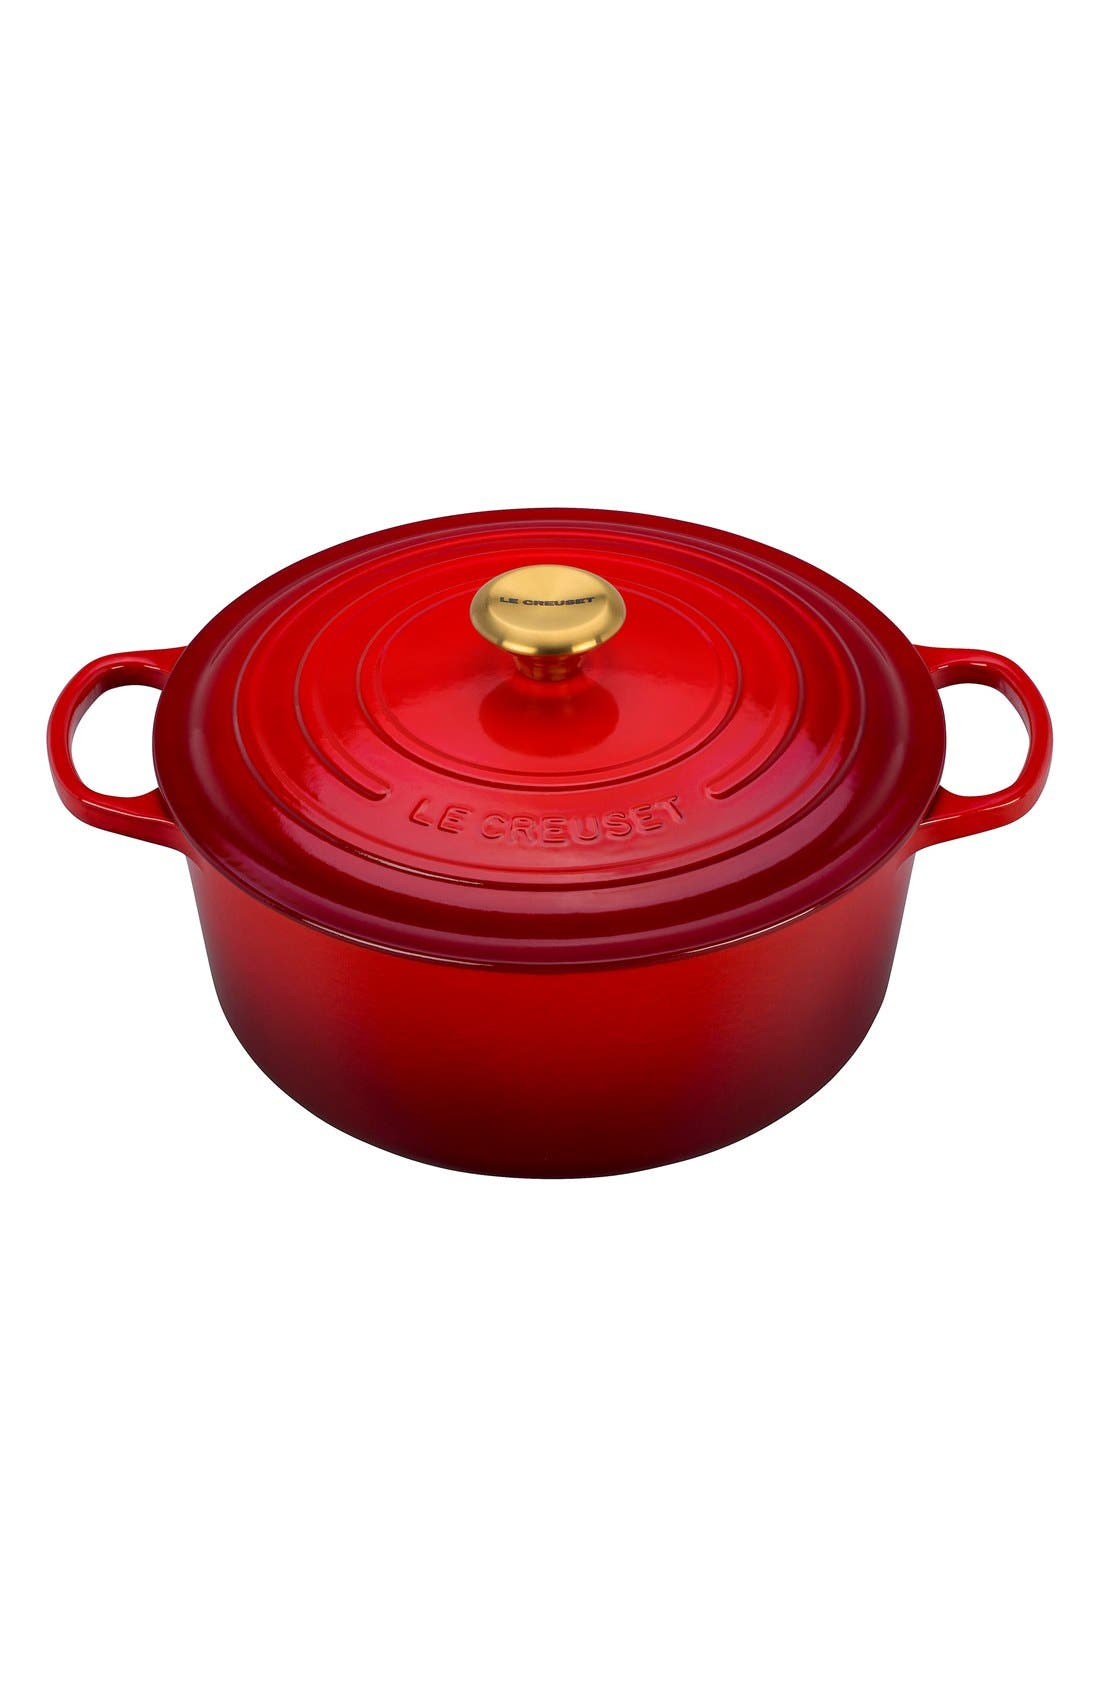 Gold Knob Collection 7 1/2 Quart Round French/Dutch Oven,                             Main thumbnail 1, color,                             600